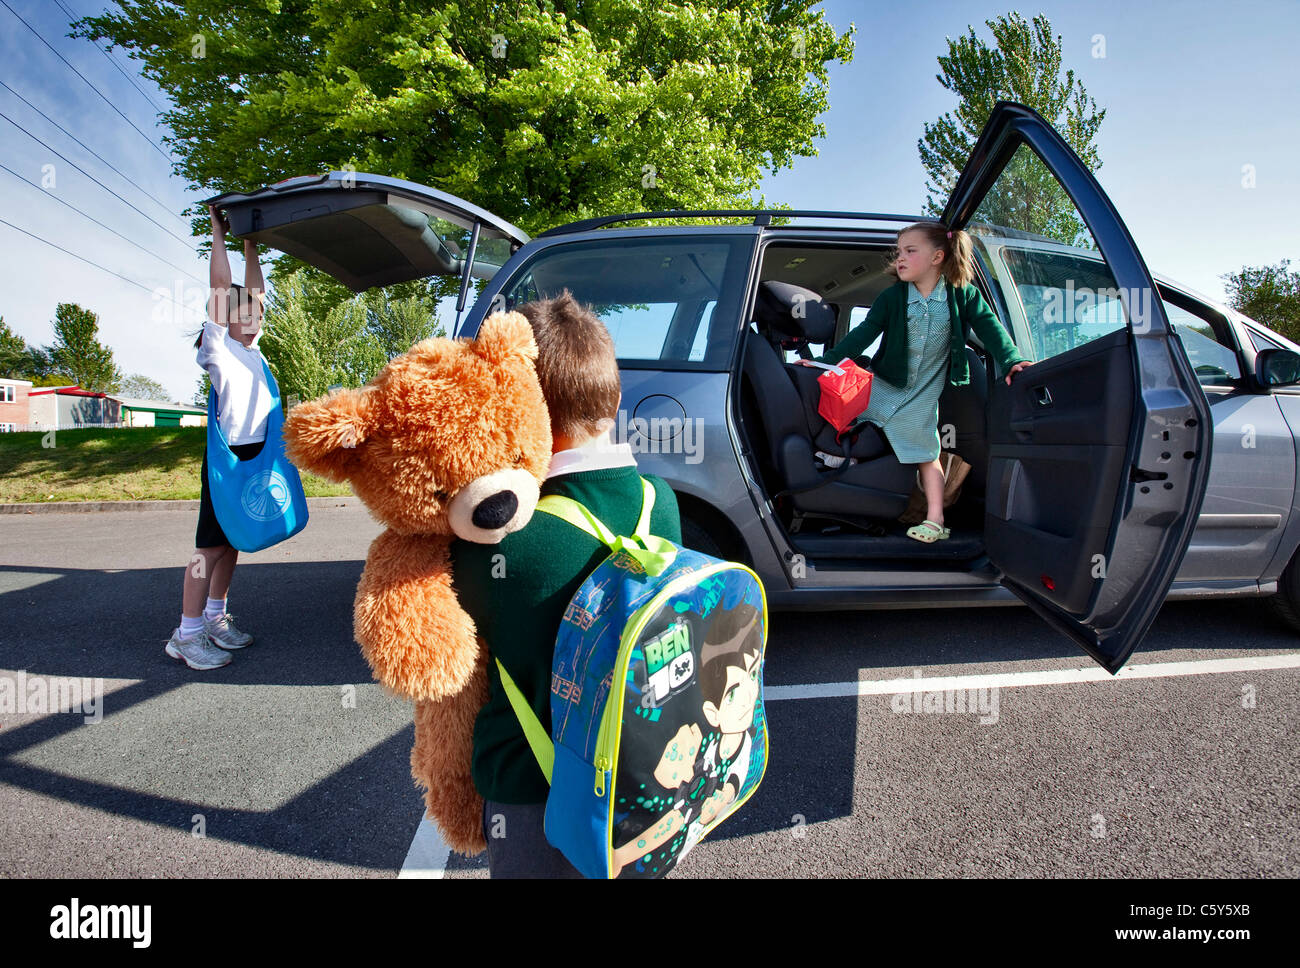 Three young primary age children on their way to school in a people carrier - Stock Image